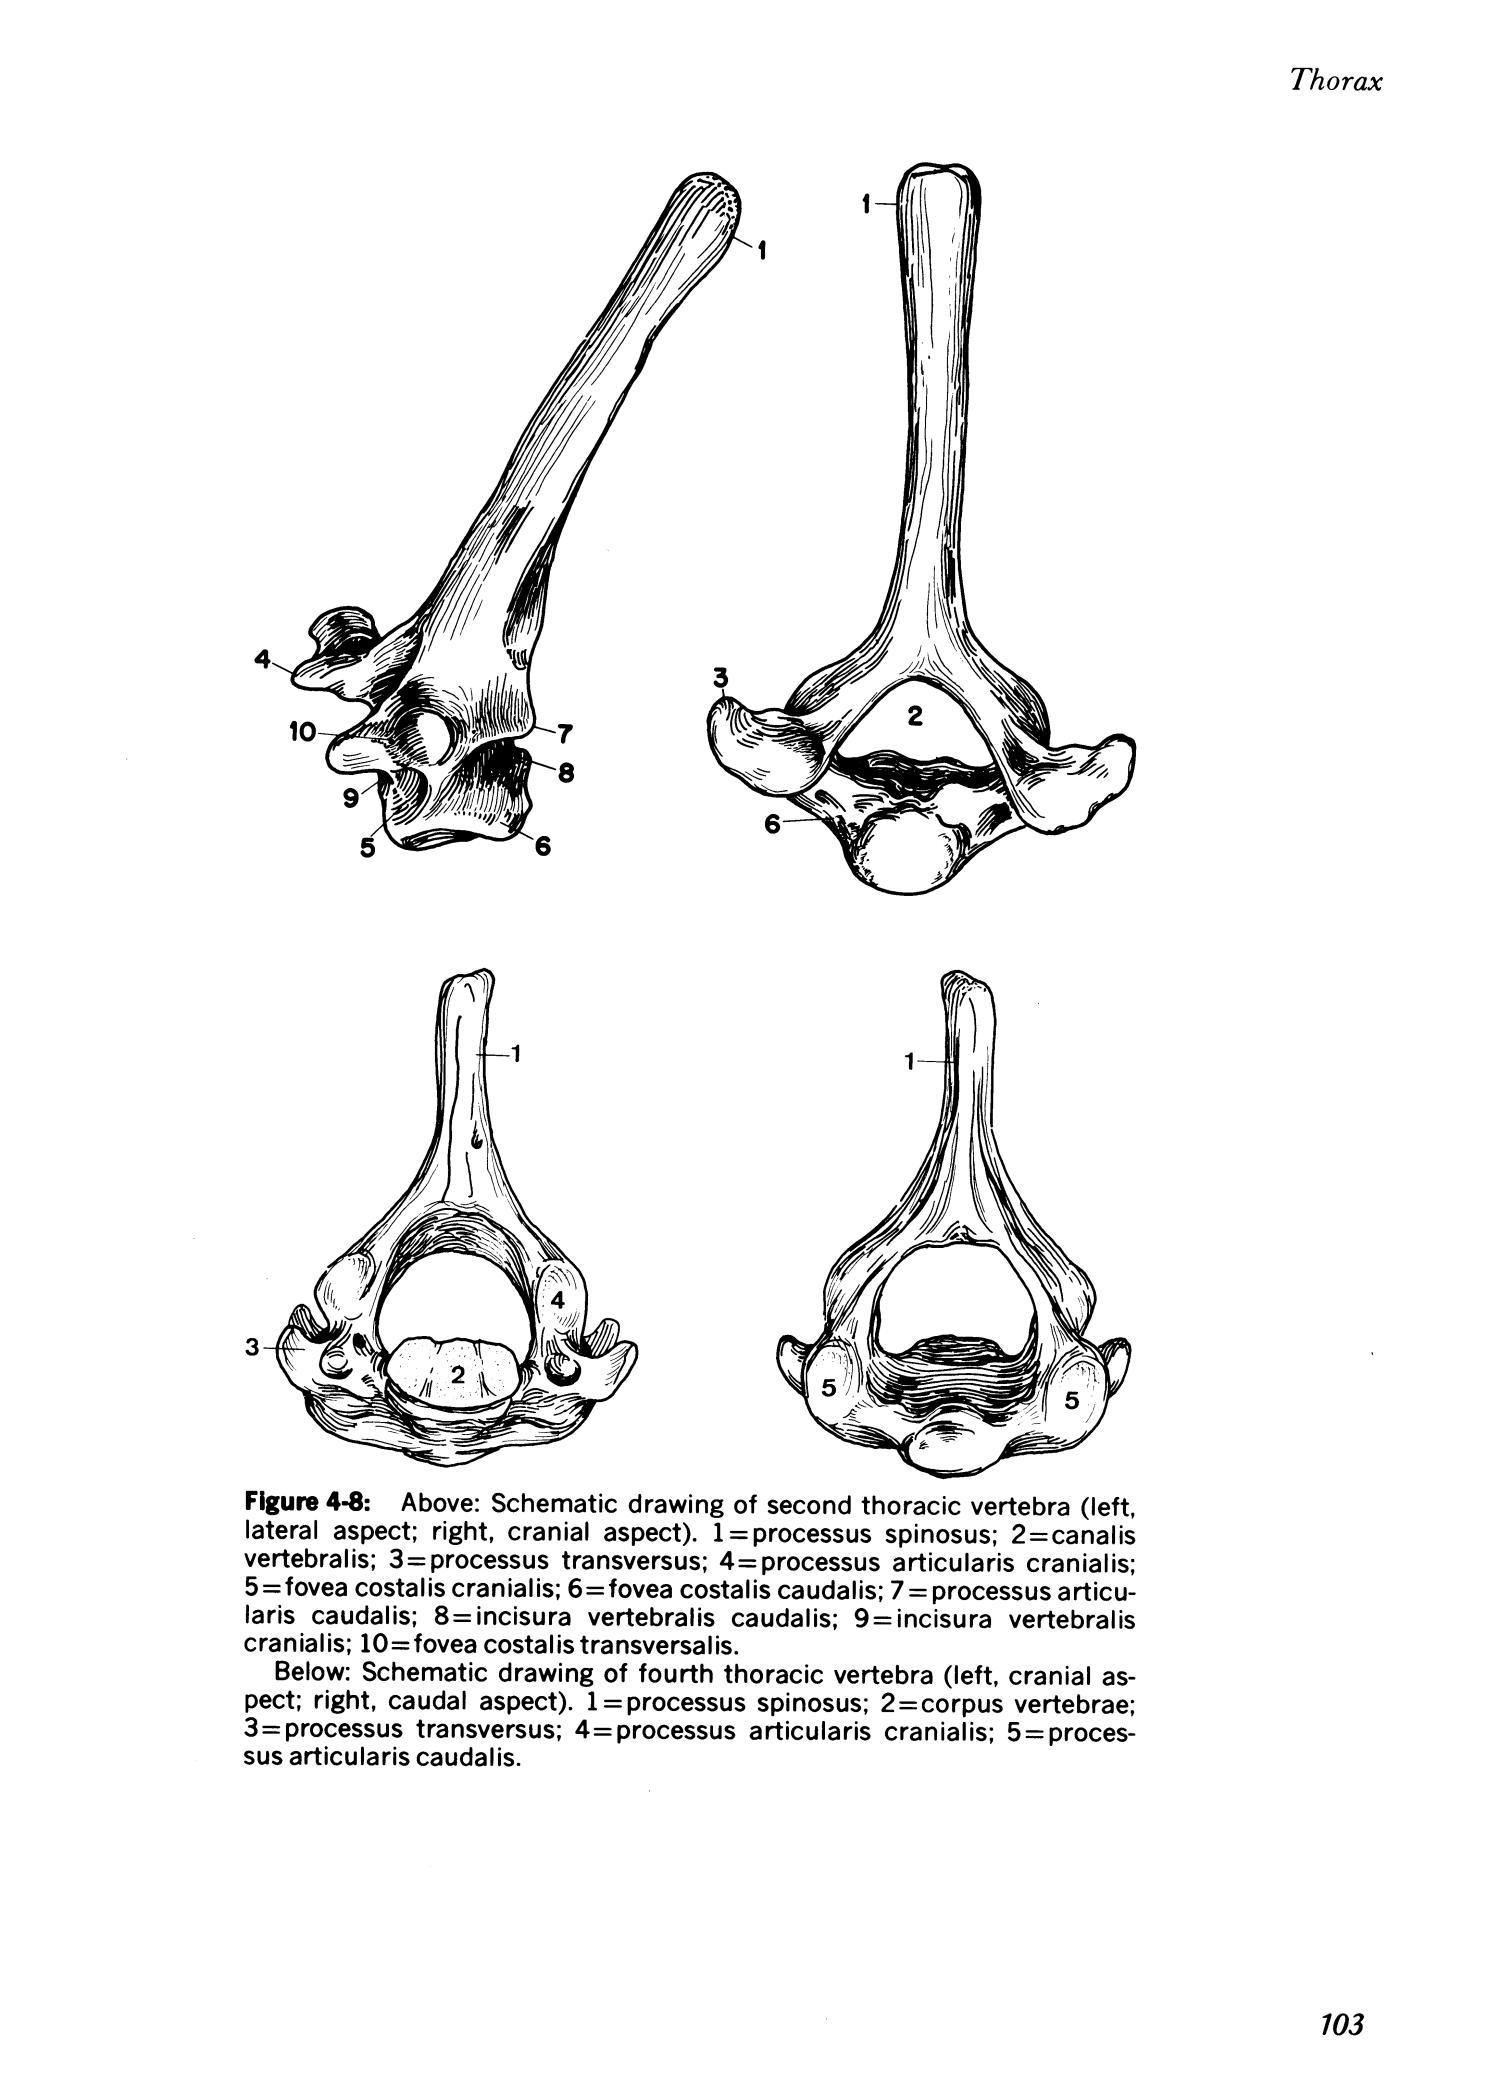 Clinical anatomy of the European hamster, Cricetus